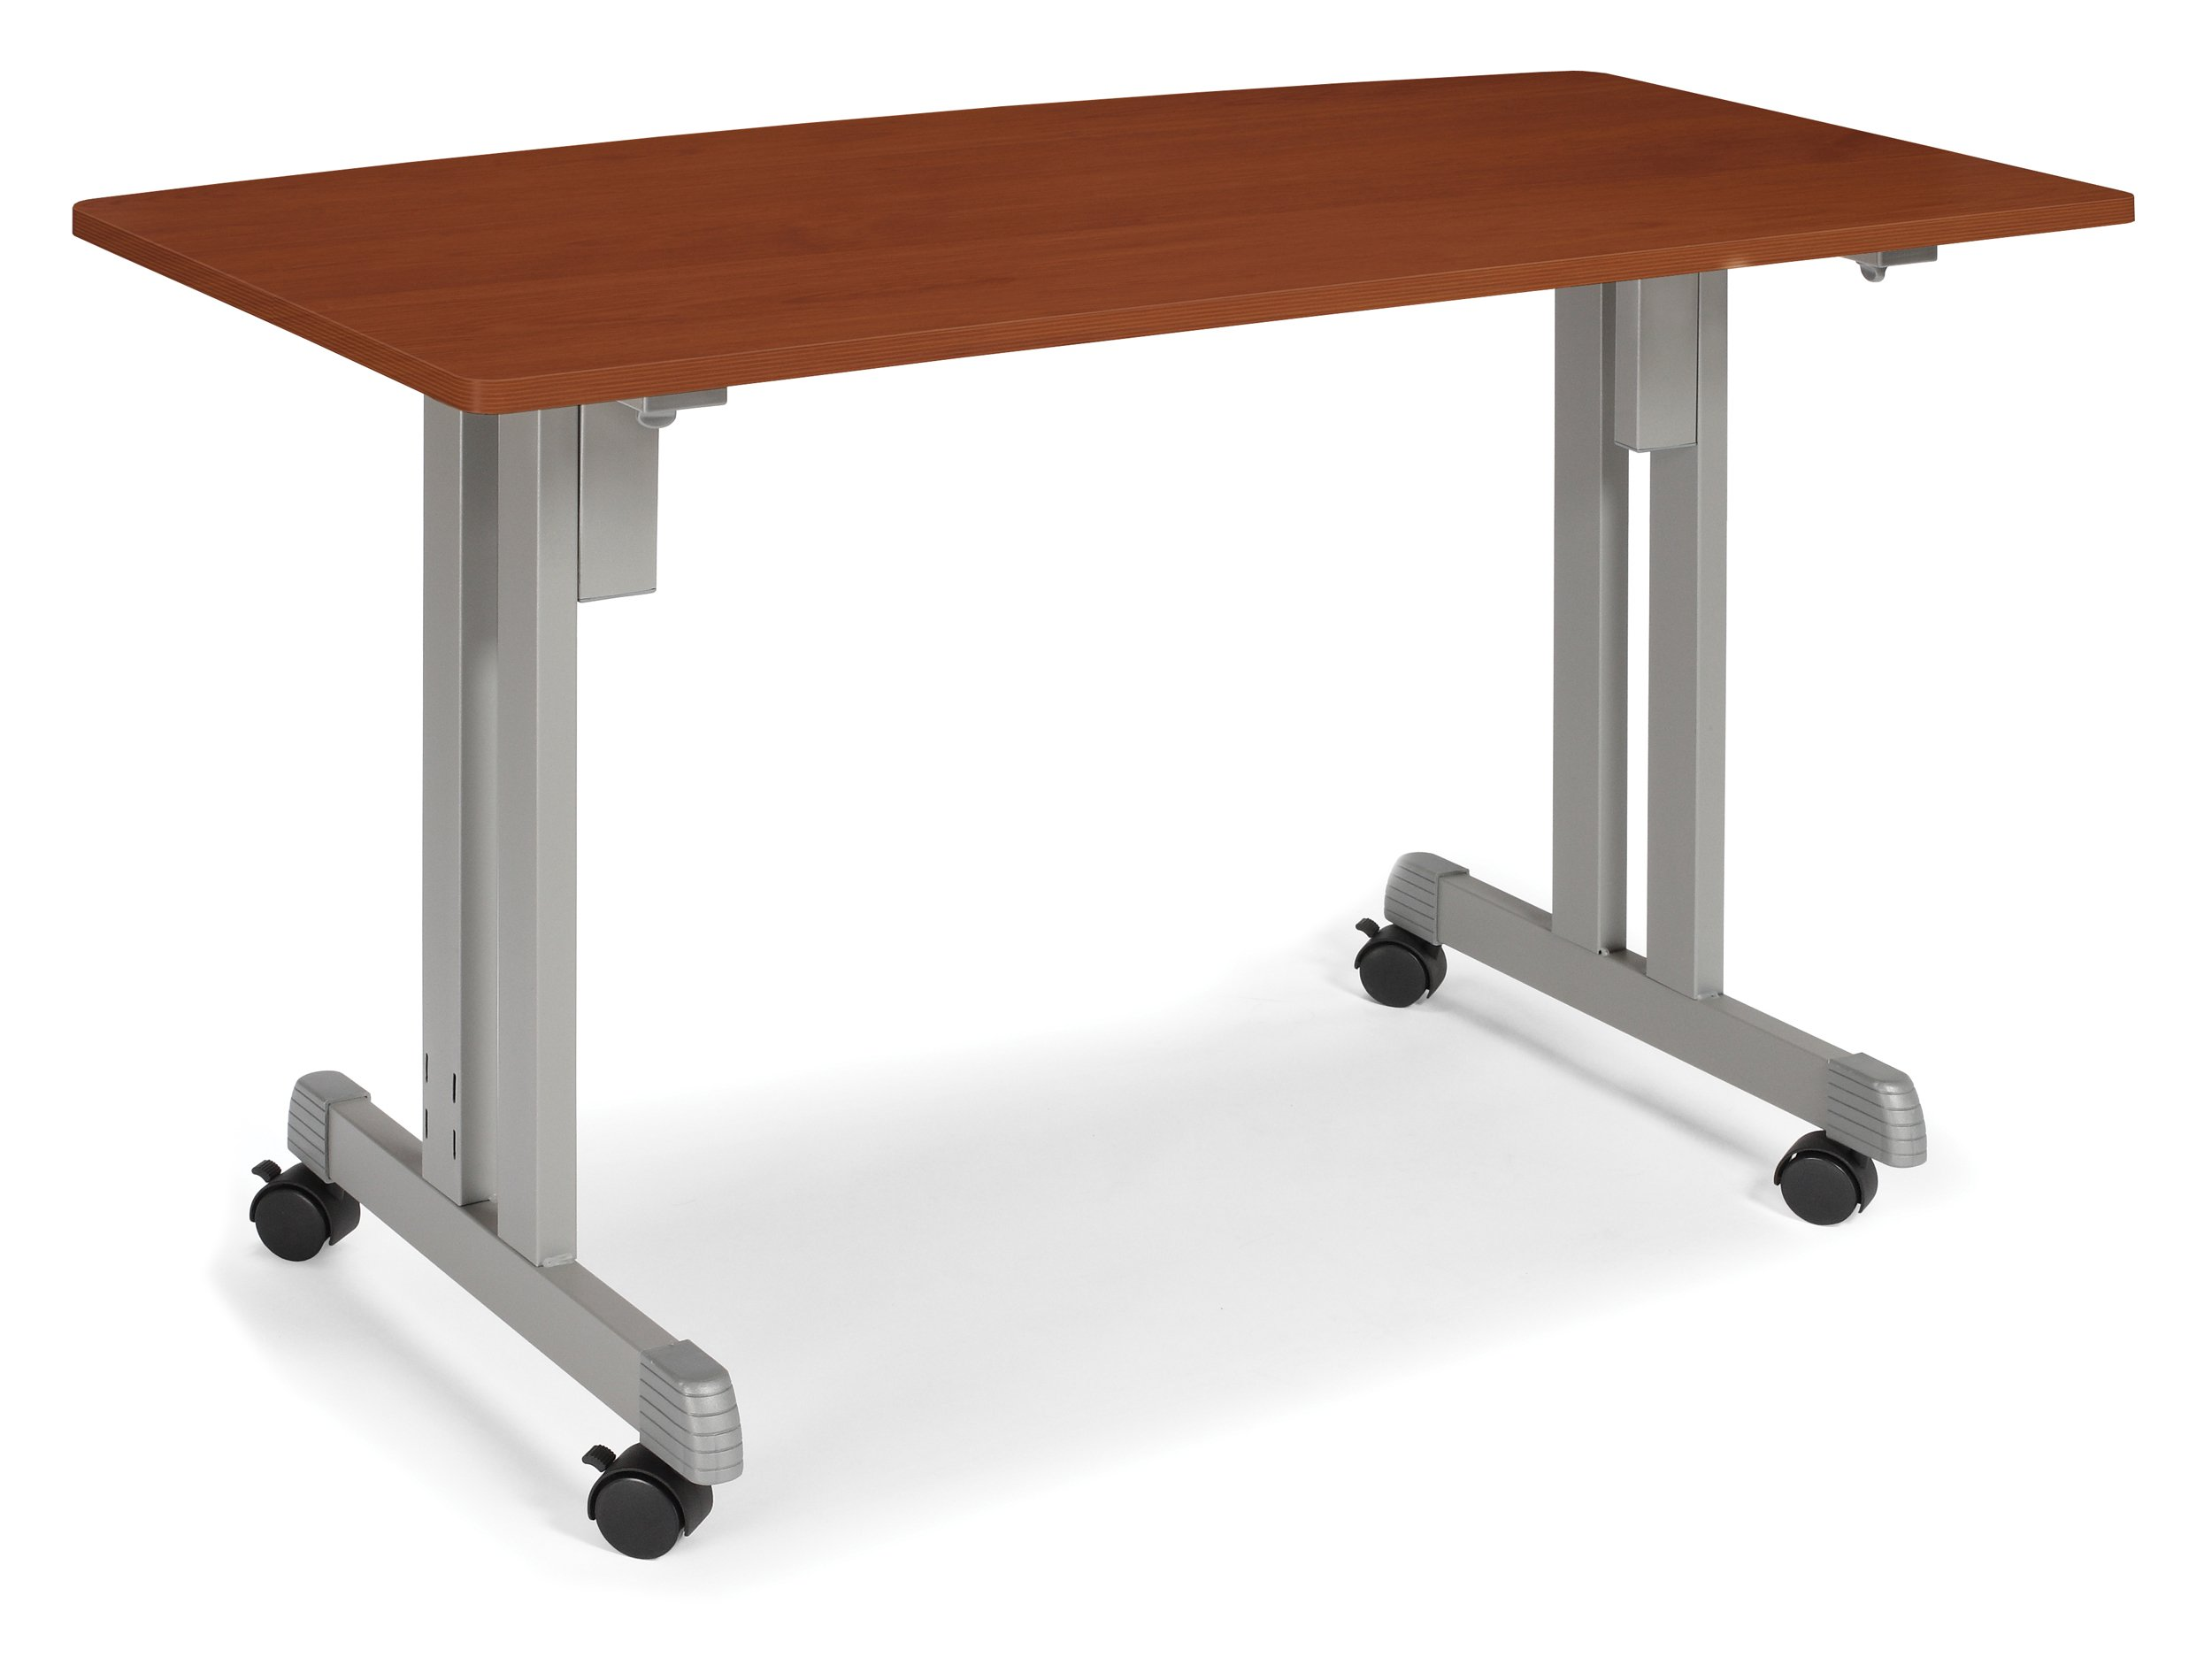 OFM 55111-CHY Multiuse Table Cherry with Silver Frame, 24 by 48-Inch